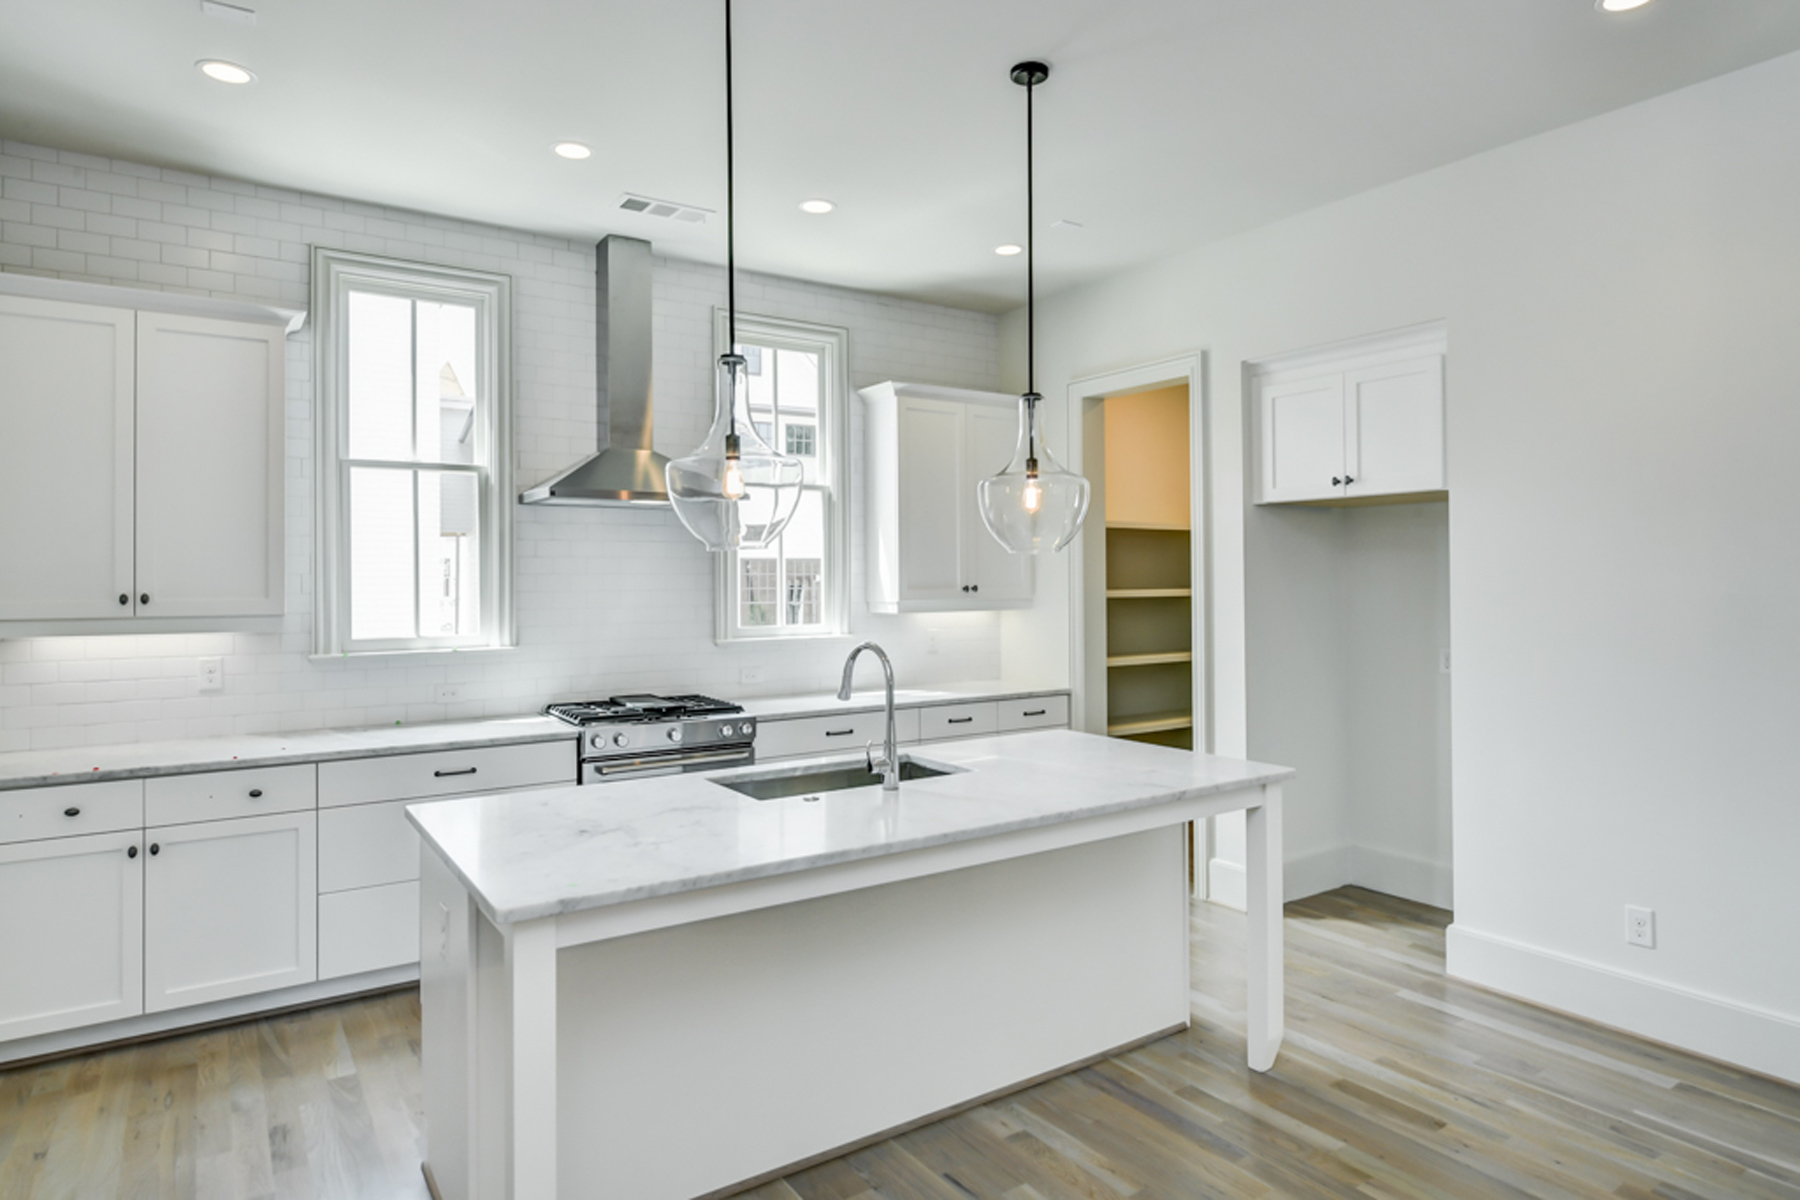 Townhouse for Sale at Brand New, Beautiful Townhome In Morningside 554 Bismark Road Atlanta, Georgia 30324 United States